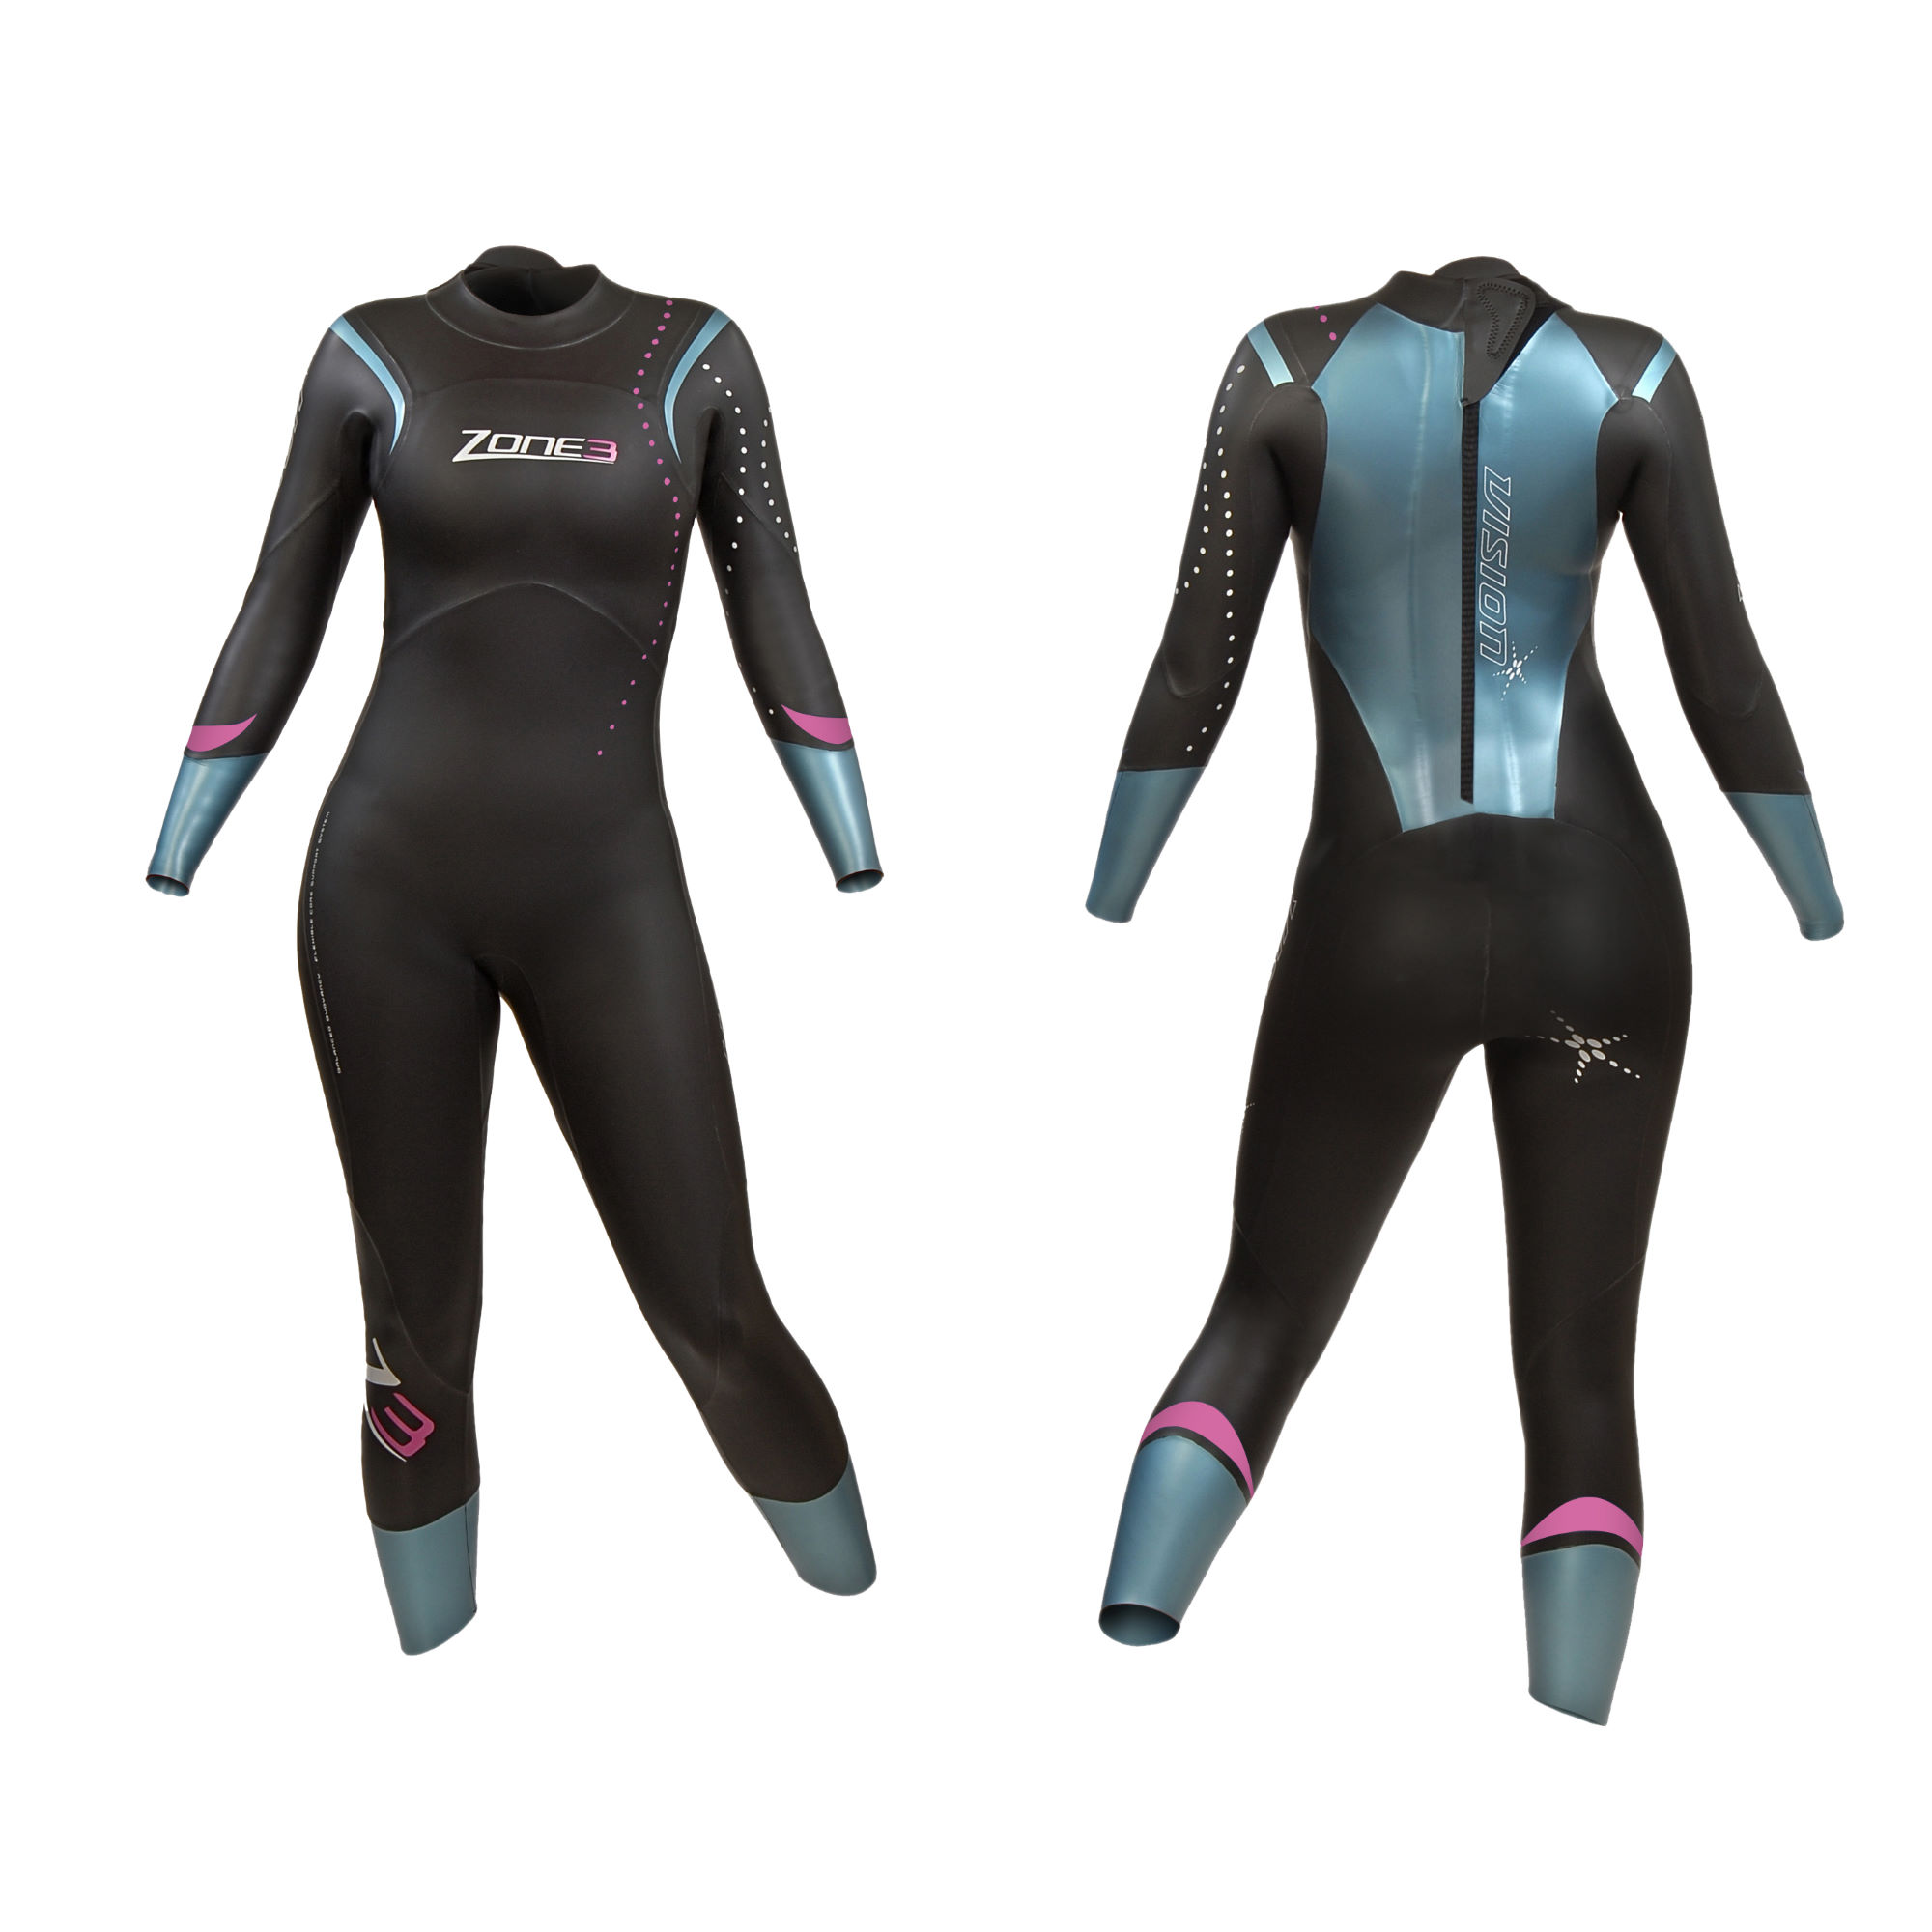 Wiggle | Zone3 Ladies Vision Wetsuit - AW13 | Wetsuits